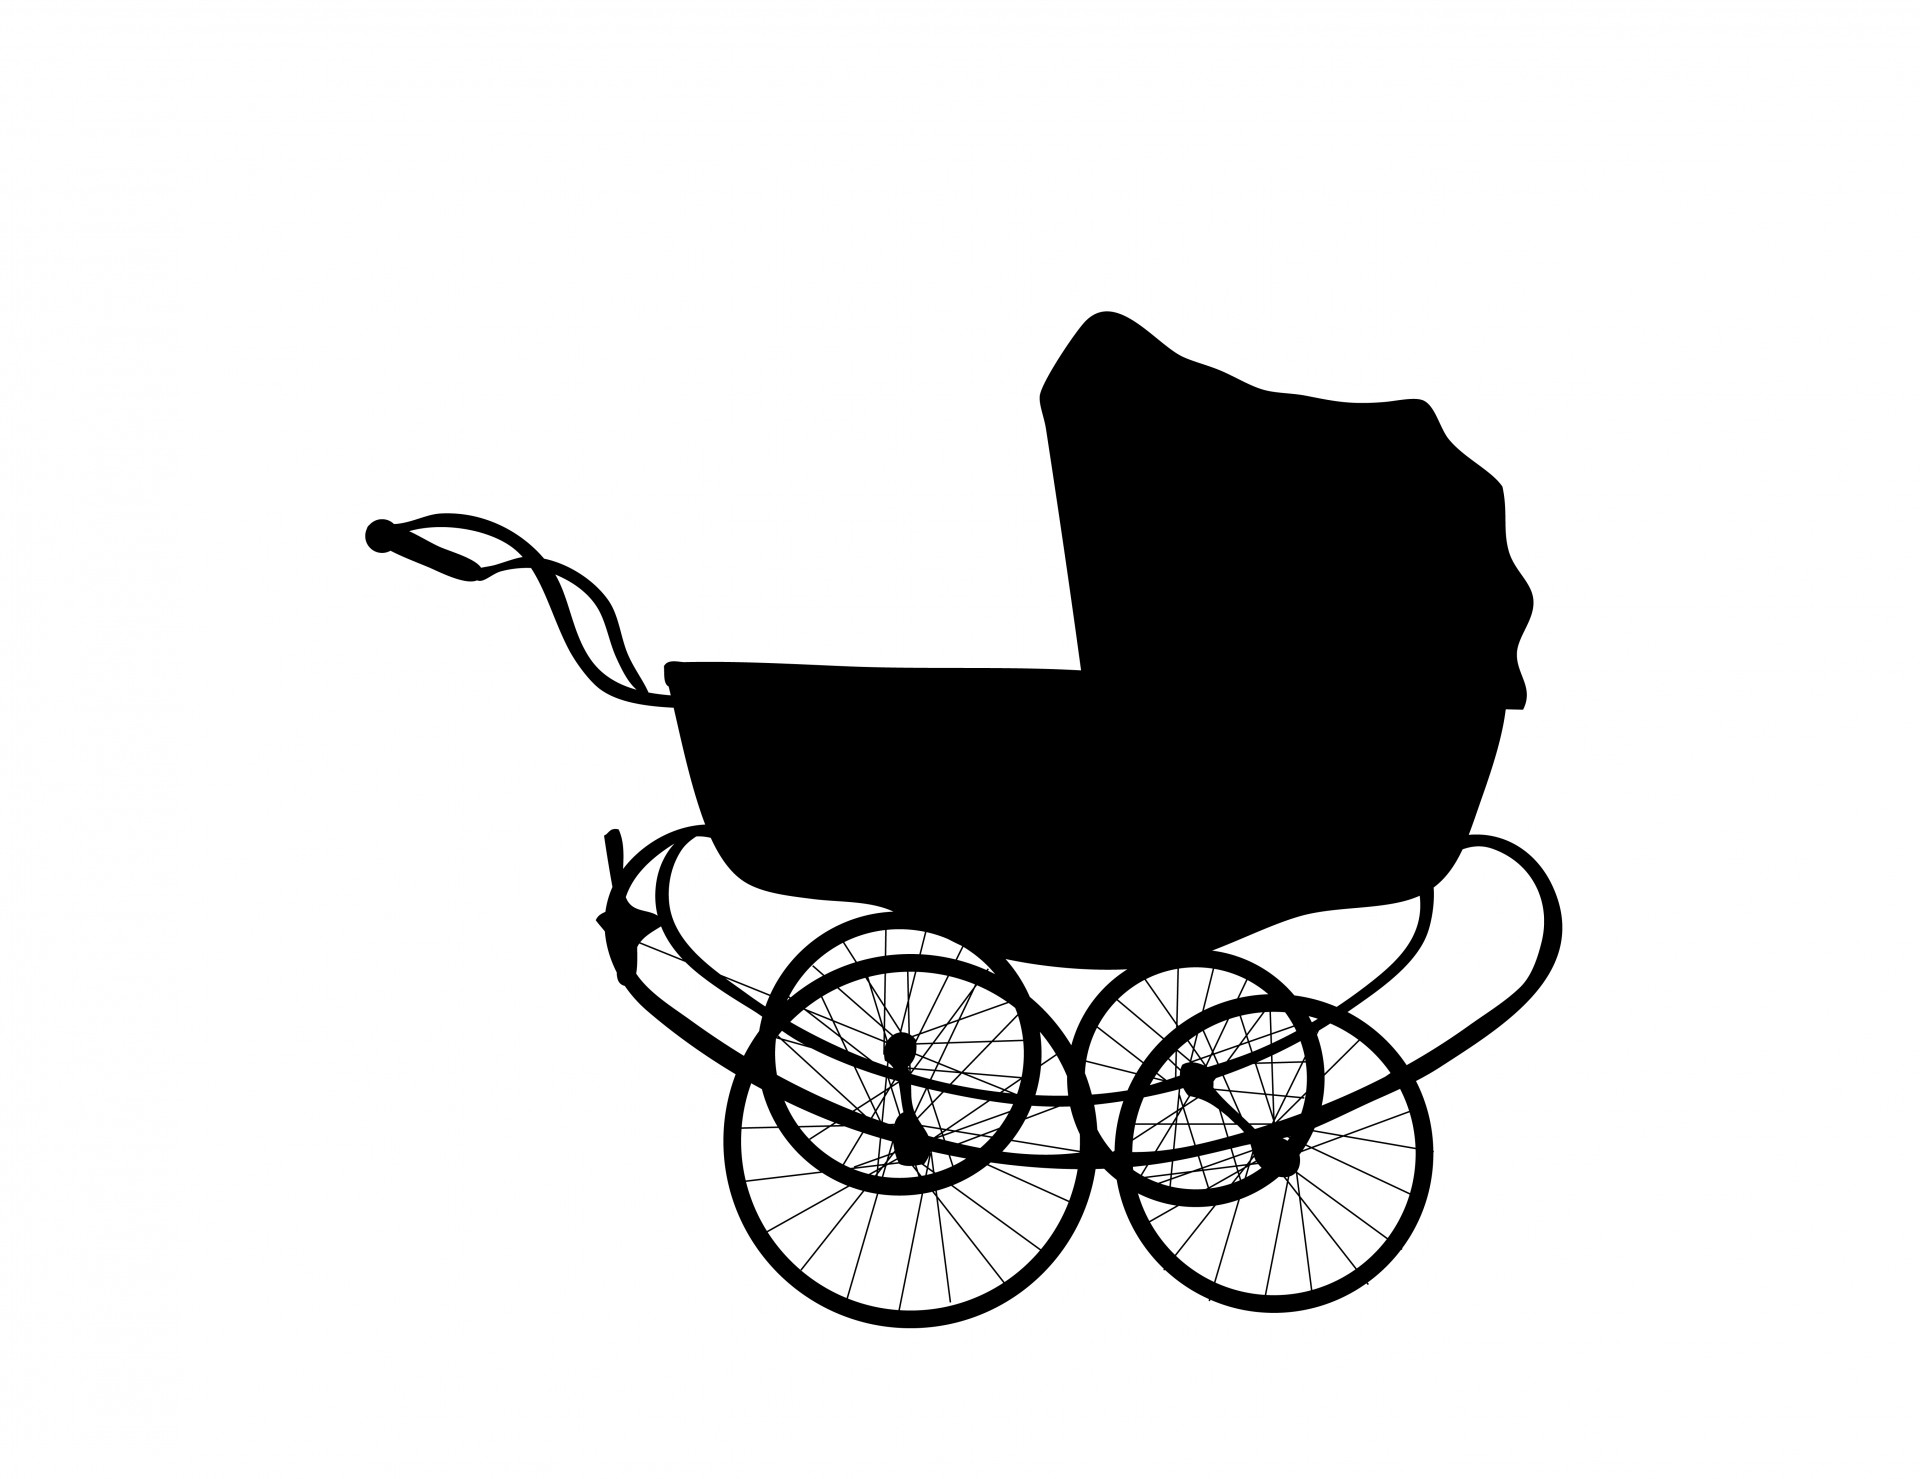 Baby free stock photo. Carriage clipart vintage